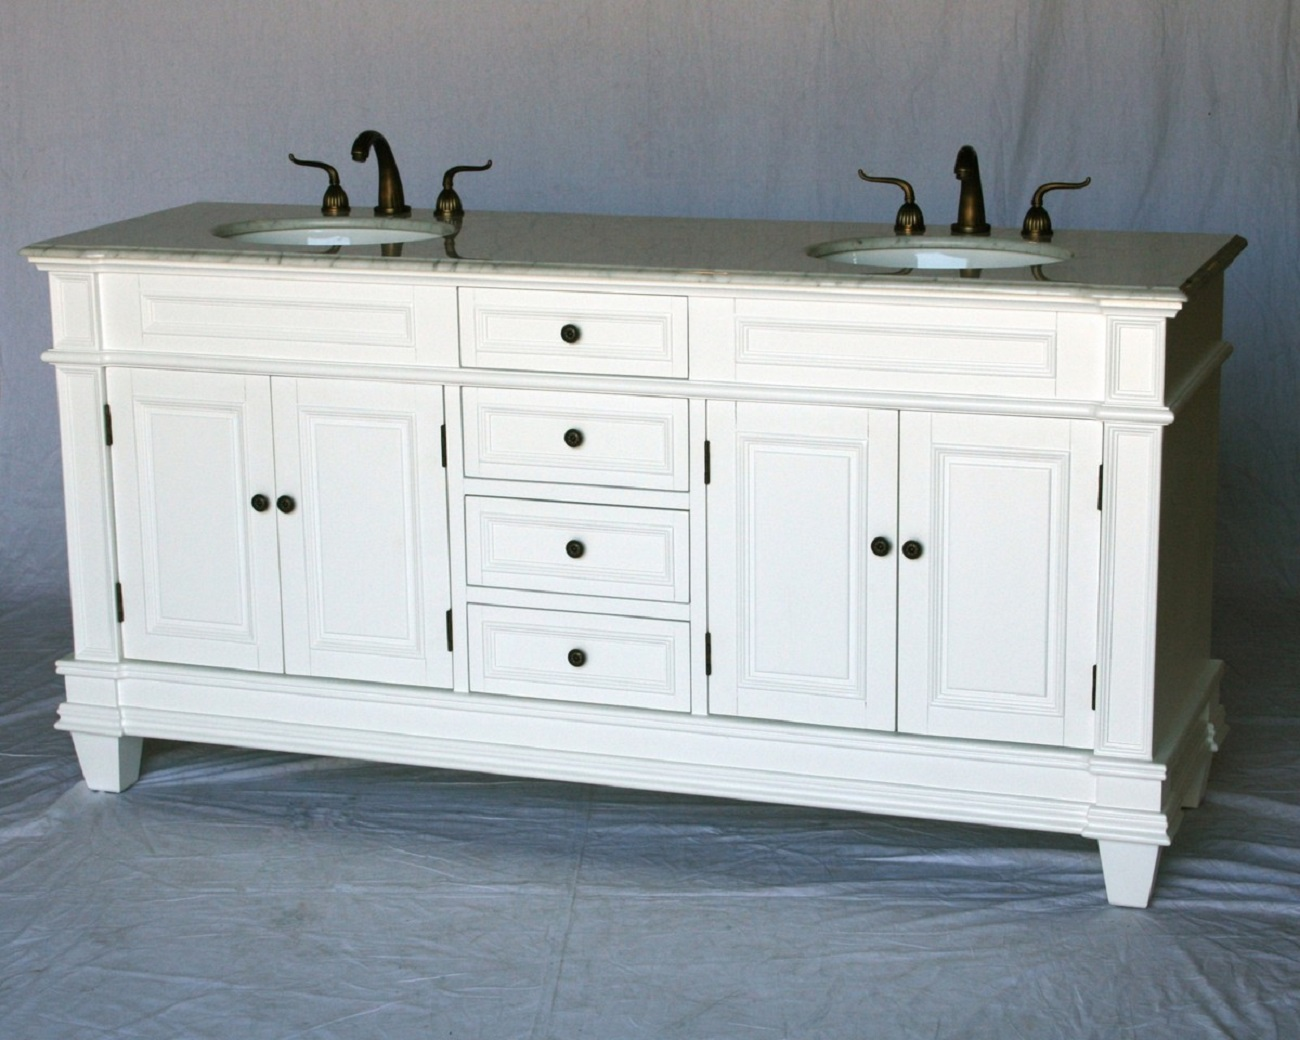 72 inch double sink transitional bathroom vanity white - 72 inch bathroom vanity double sink ...